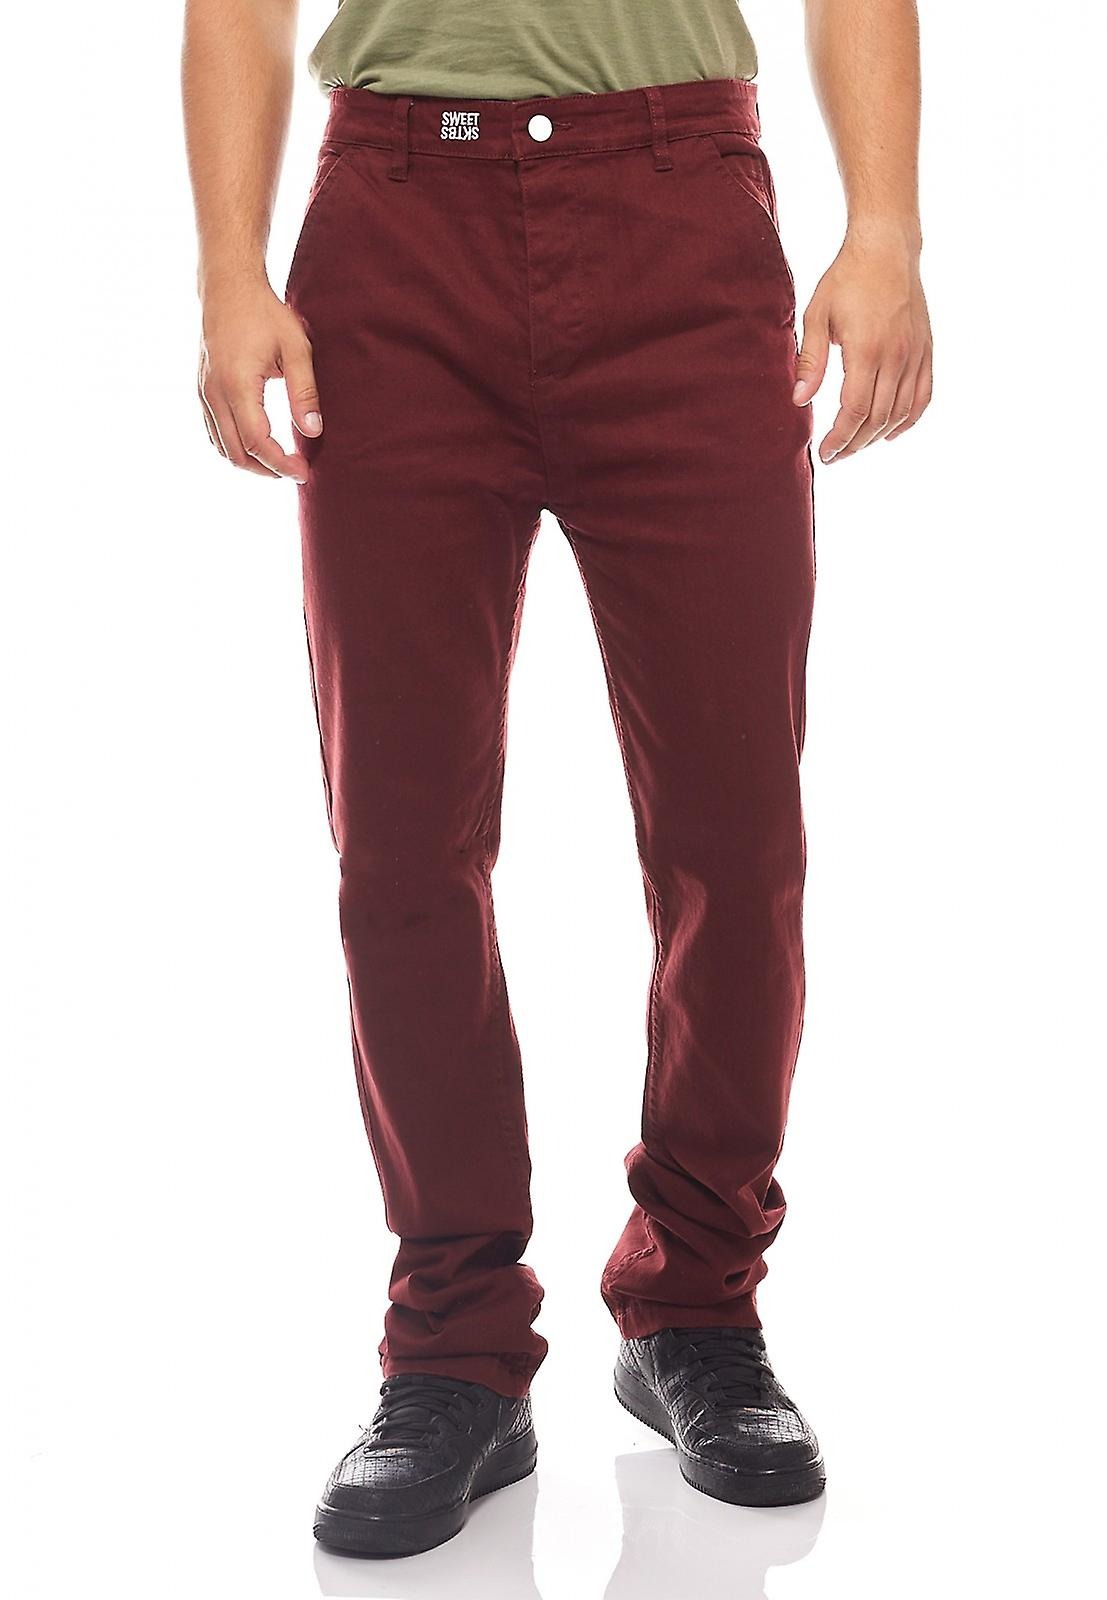 sweet sktbs chino herren jeans rot the chinos fruugo. Black Bedroom Furniture Sets. Home Design Ideas